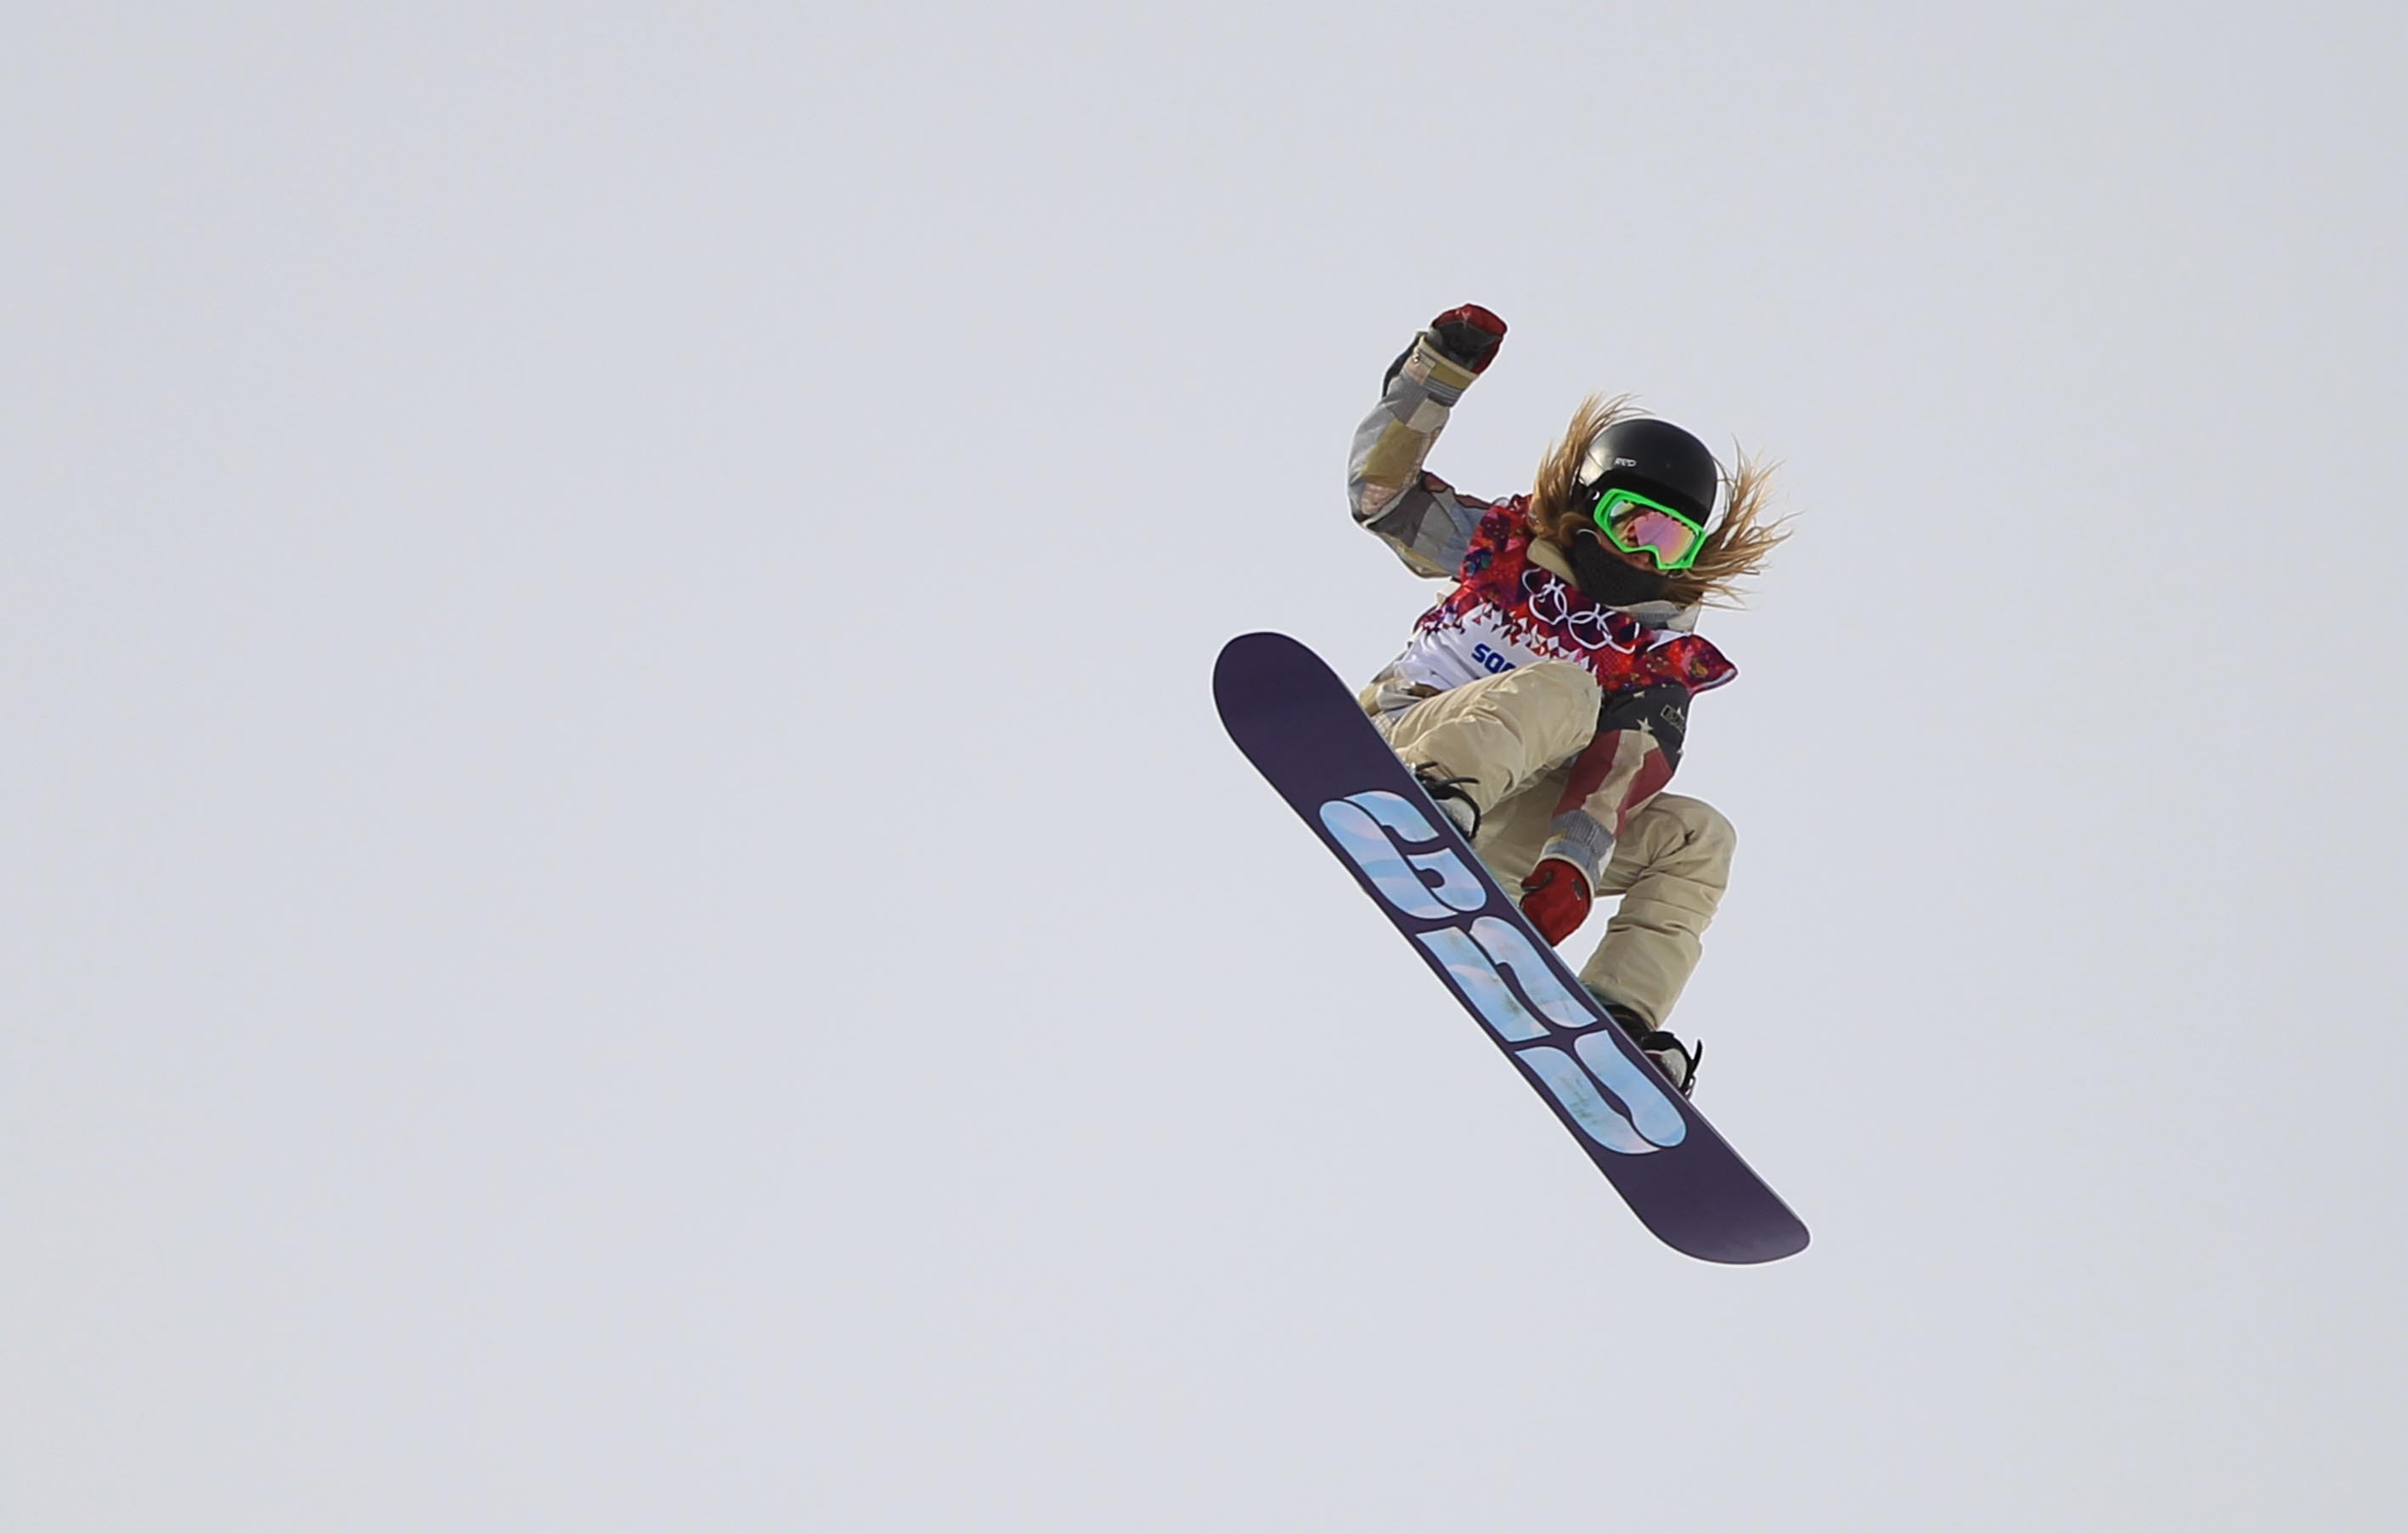 Jamie Anderson of United States wins the gold medal at the final competition in slopestyle Sunday at the Sochi 2014 Winter Olympics